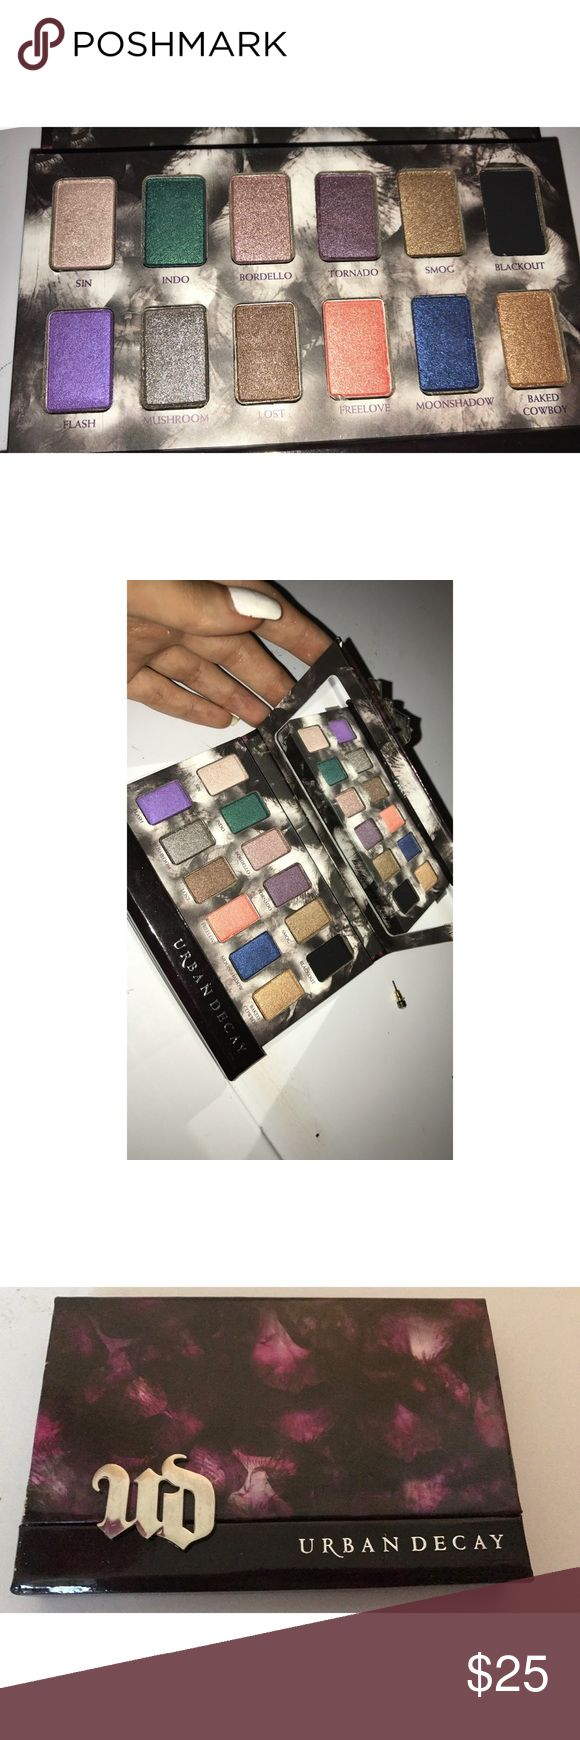 Urban Decay shadow box palette. I revived this is a gift and threw away the box but it has never been used! In perfect condition, just doing some cleaning and realized I never used it so it could use a new home! :) Urban Decay Makeup Eyeshadow